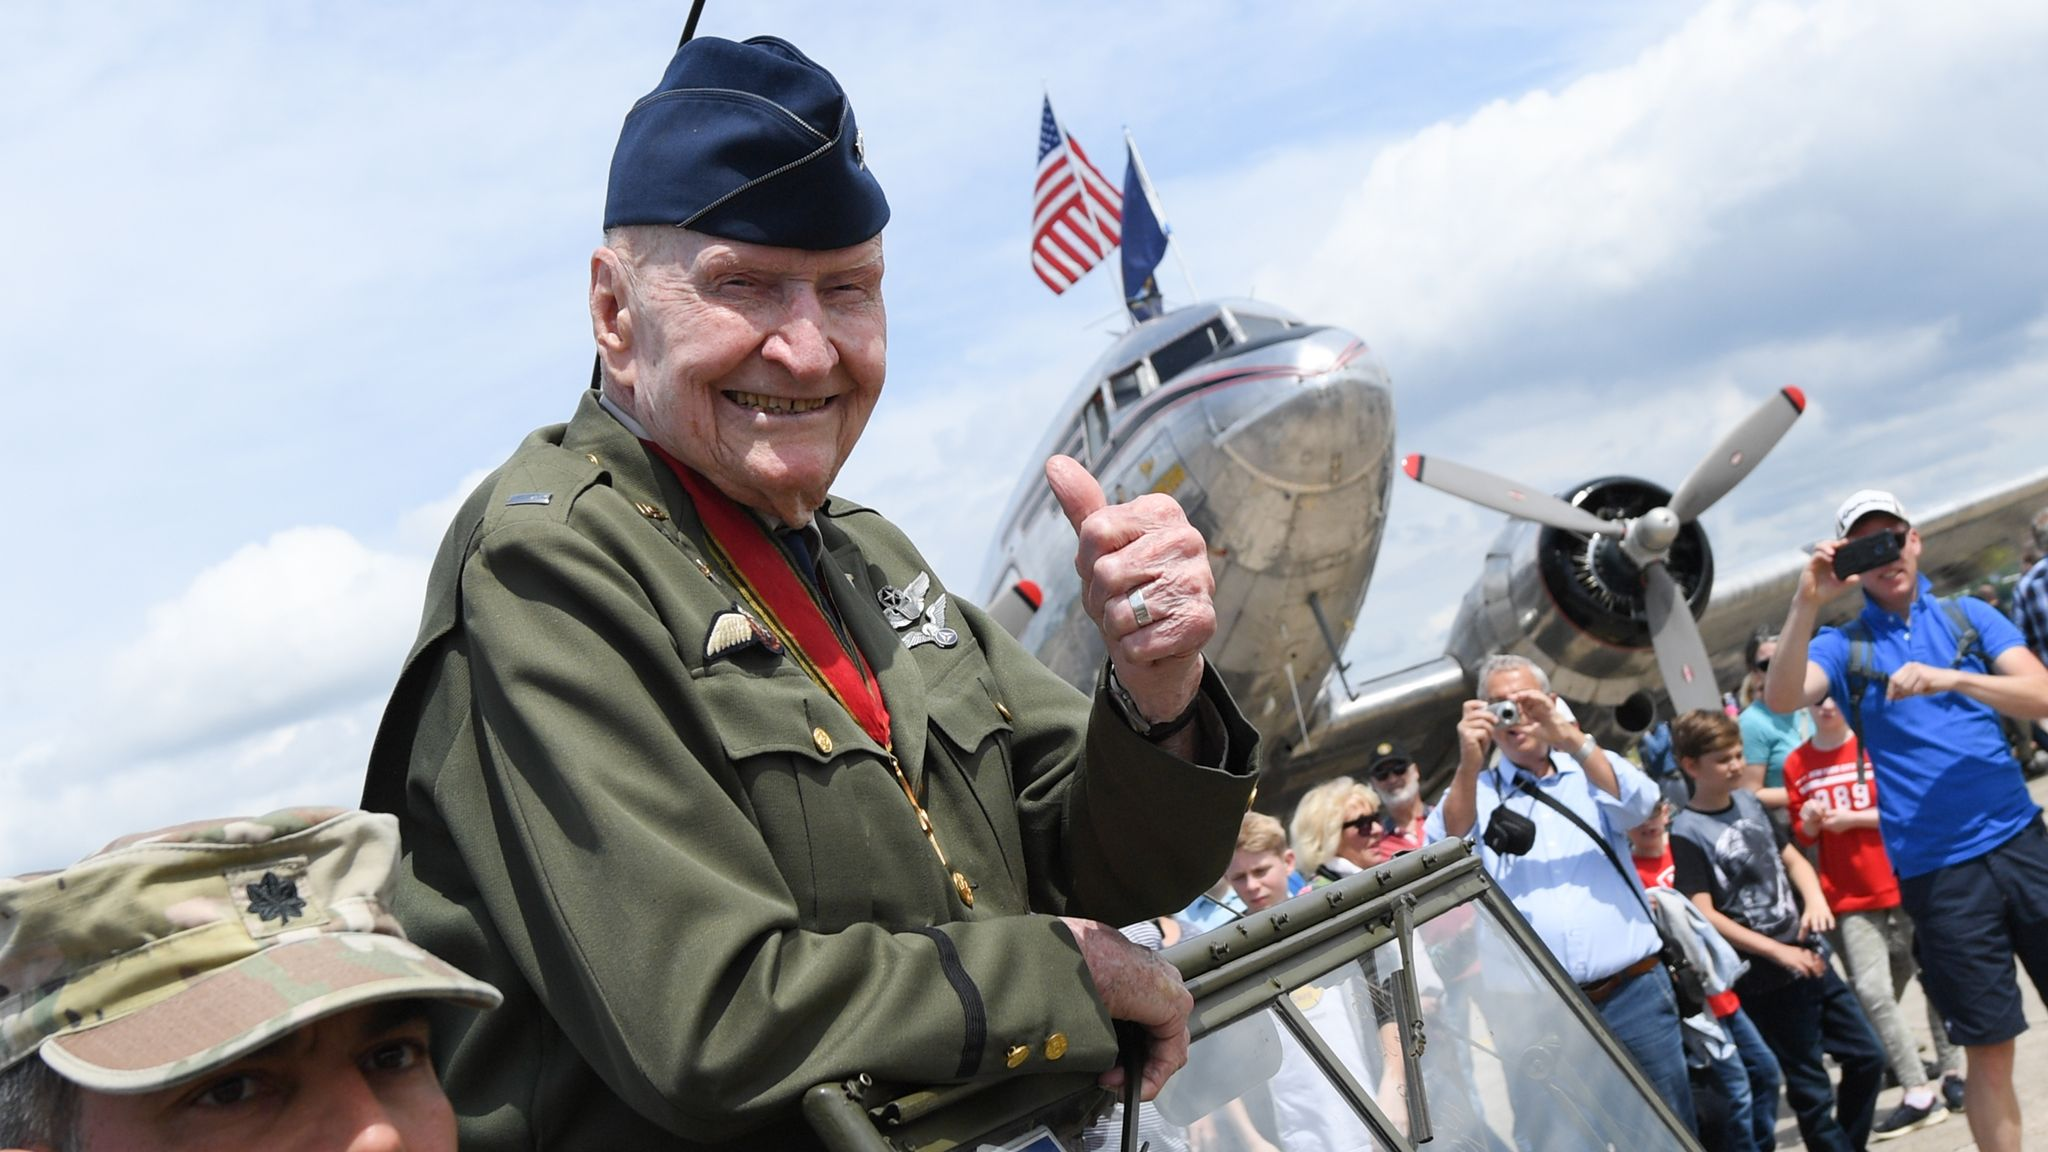 'Berlin Candy Bomber' honoured as UK mourns war dead on Remembrance Sunday